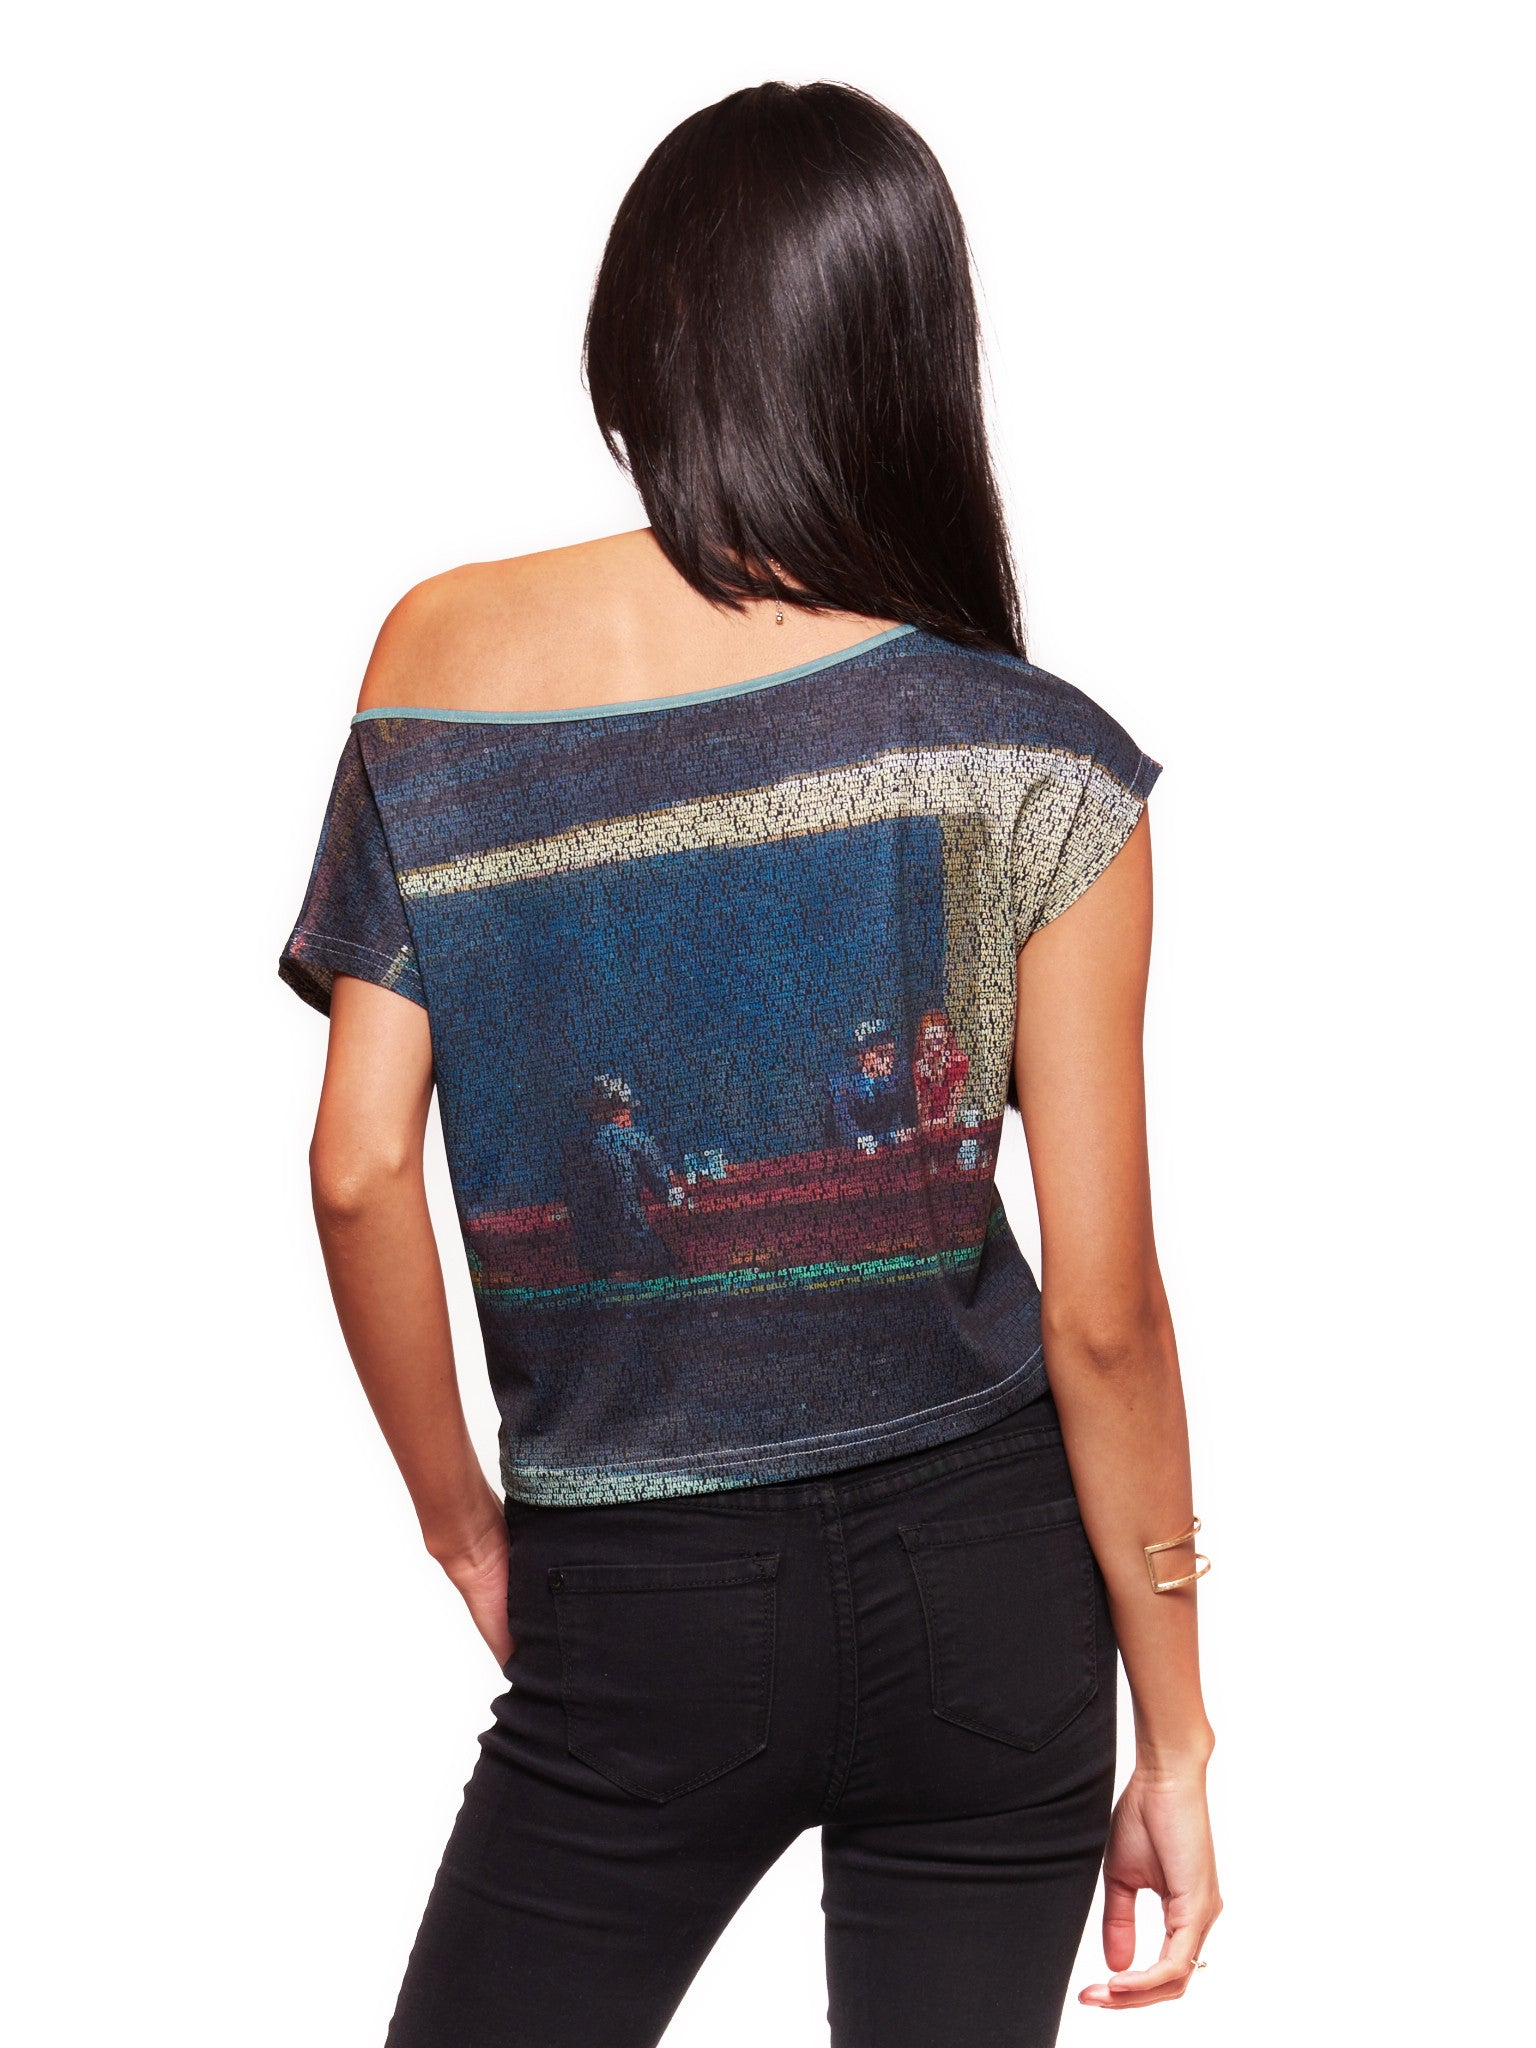 Tom Nighthawks (Edward Hopper/Suzanne Vega mash up) Women's Crop Top - Nuvango  - 2